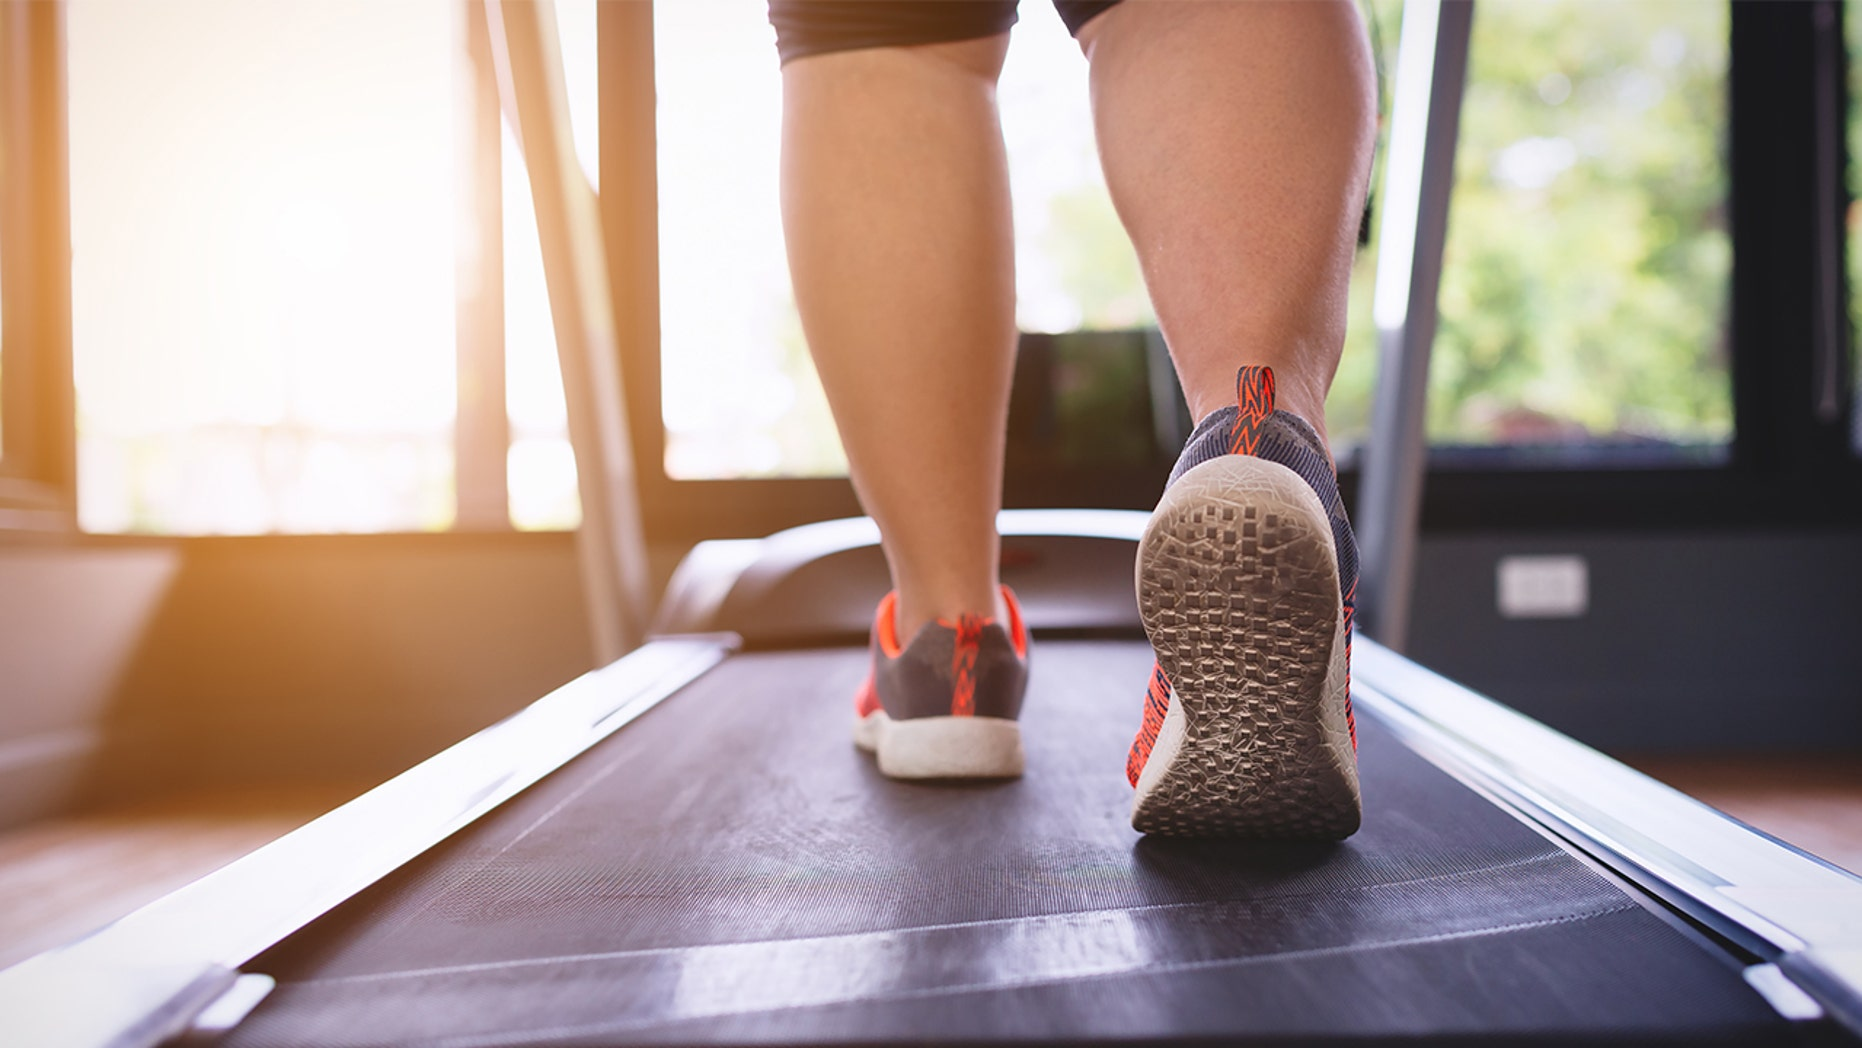 Both exercise and obesity are rising, according to a new study in the U.S.